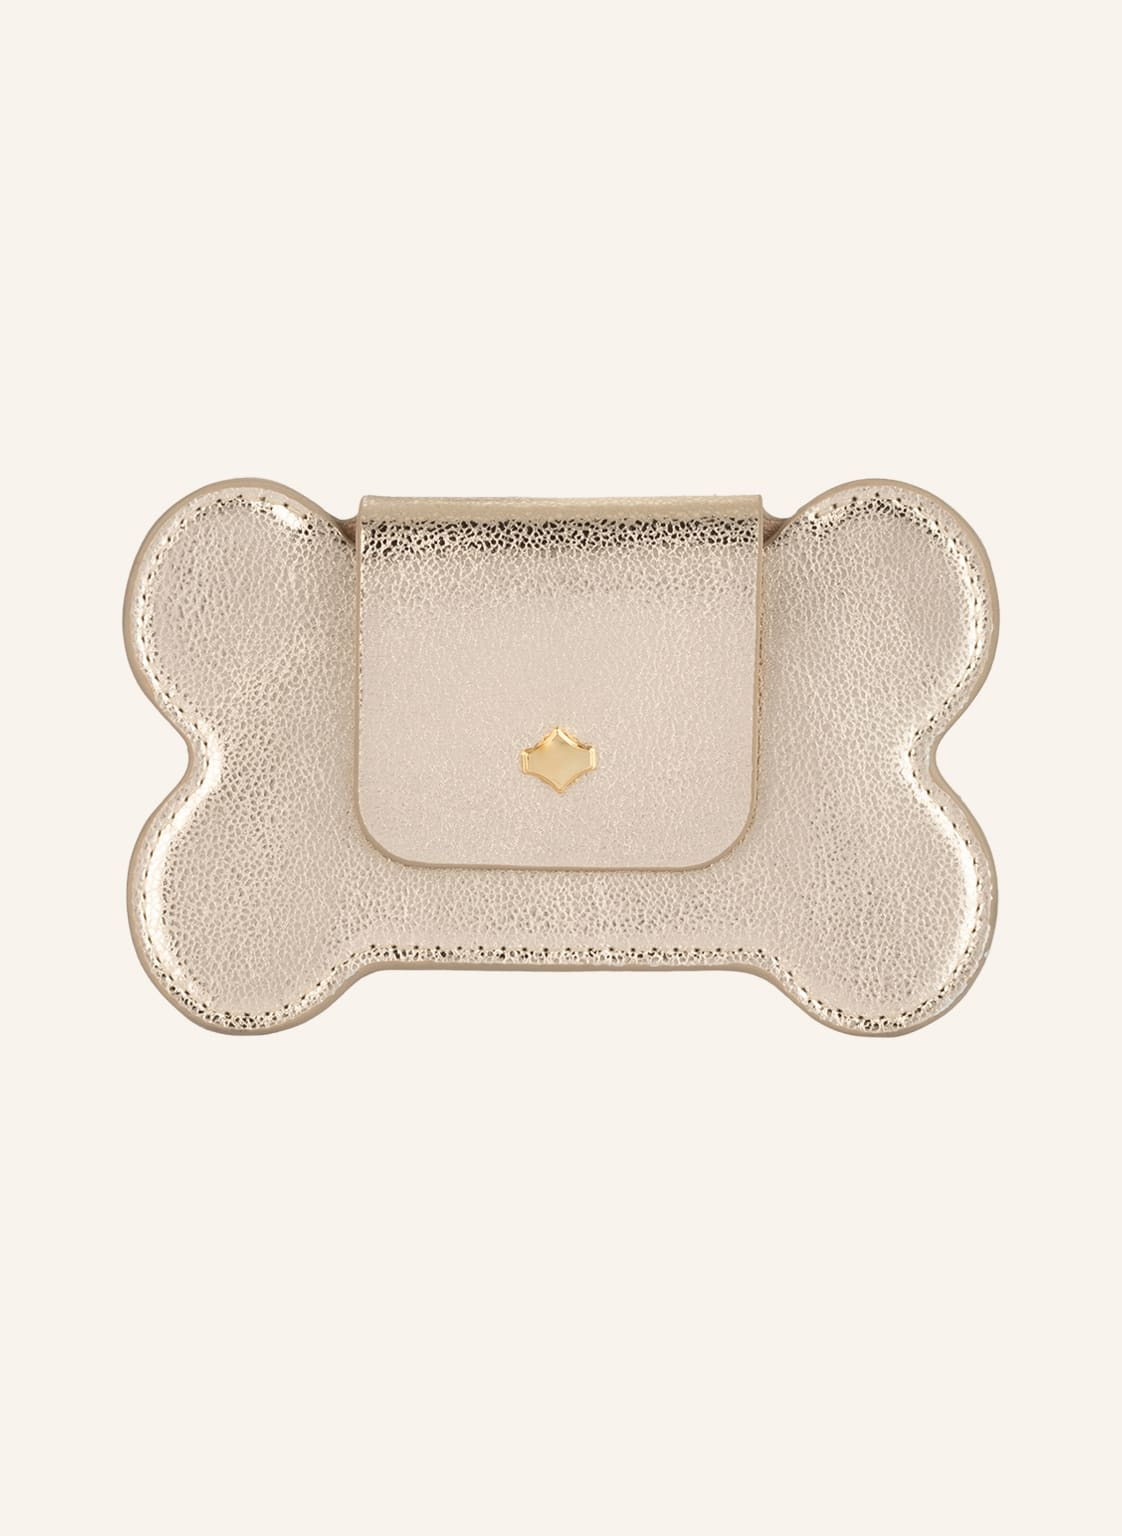 Image of Any Di Taschenanhänger gold